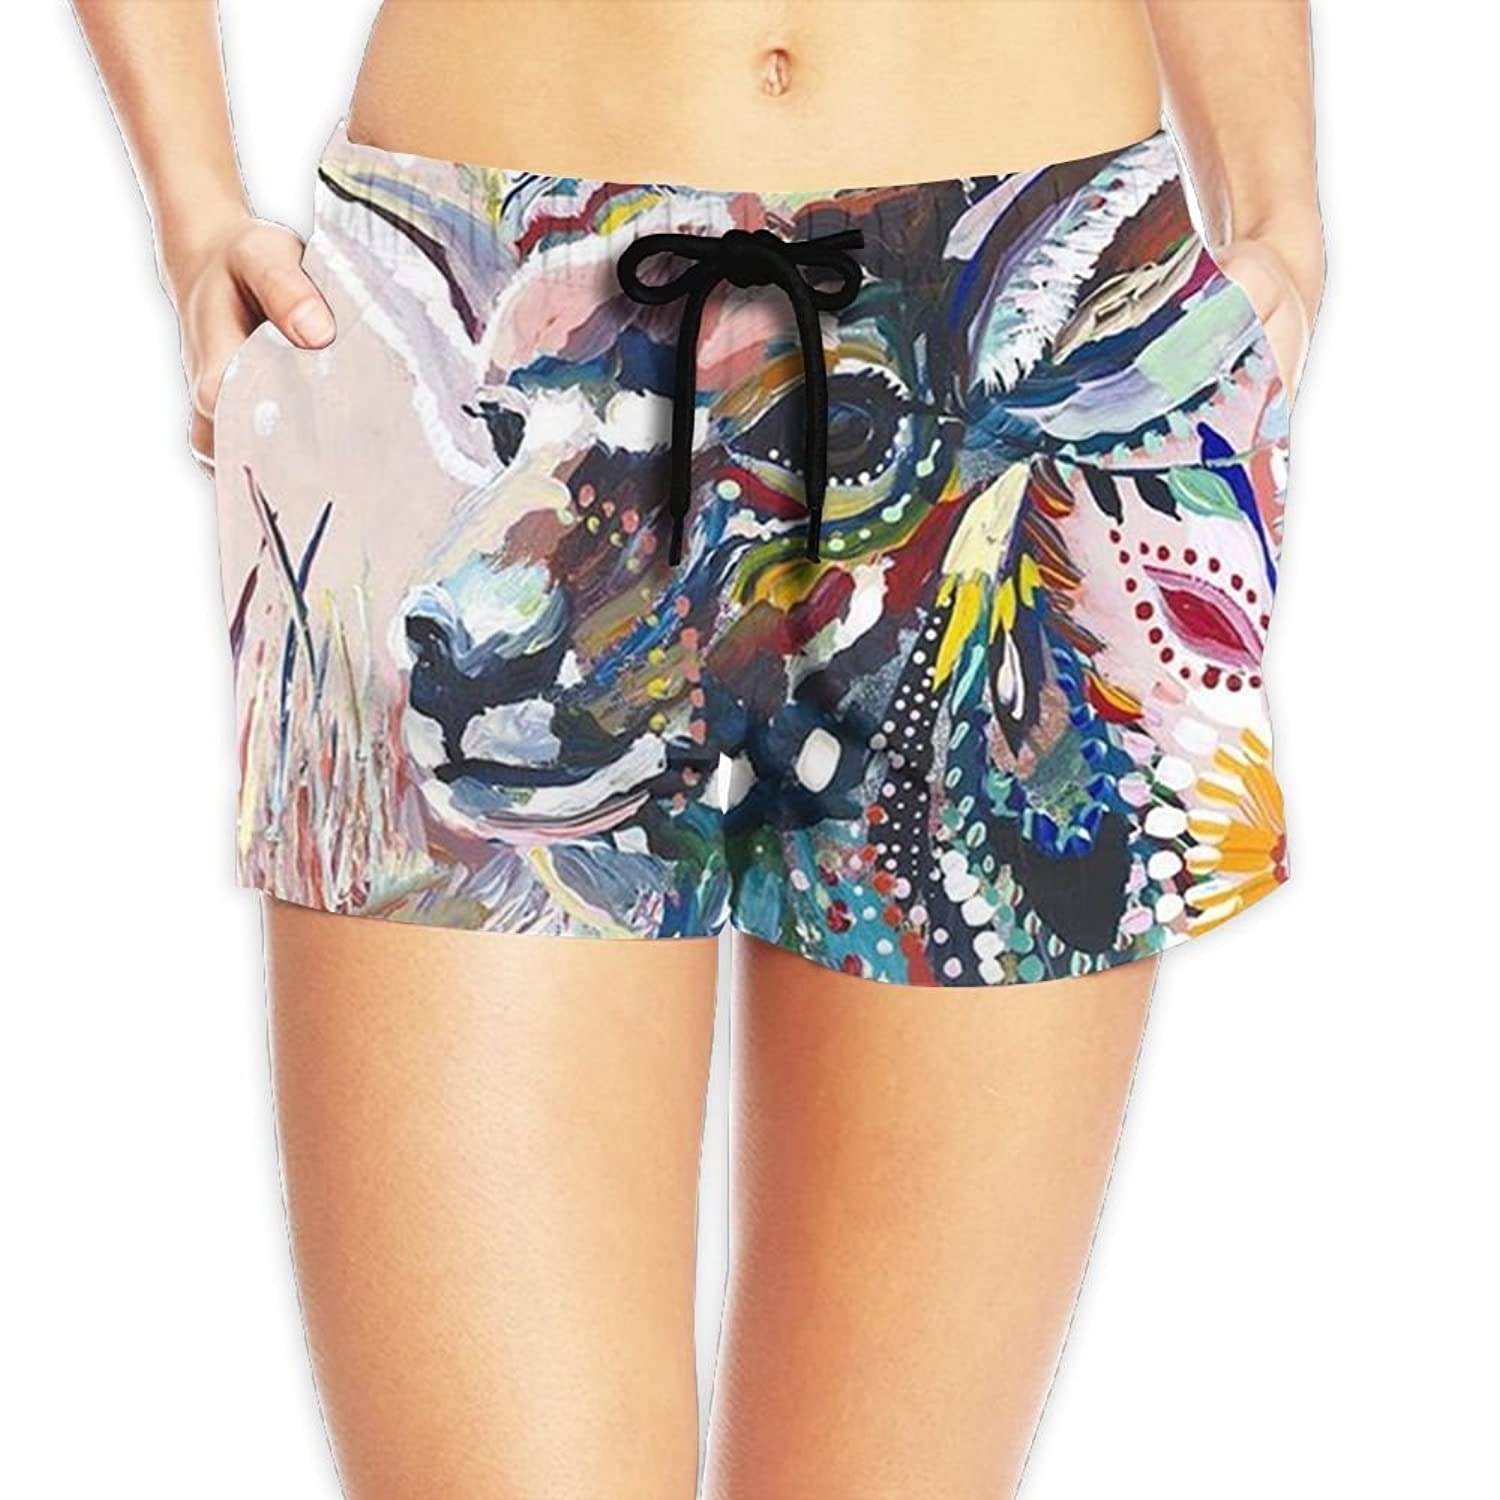 StarRevolution Women's Colorful Animal Goat Swim Trunks Beach Shorts With Pockets